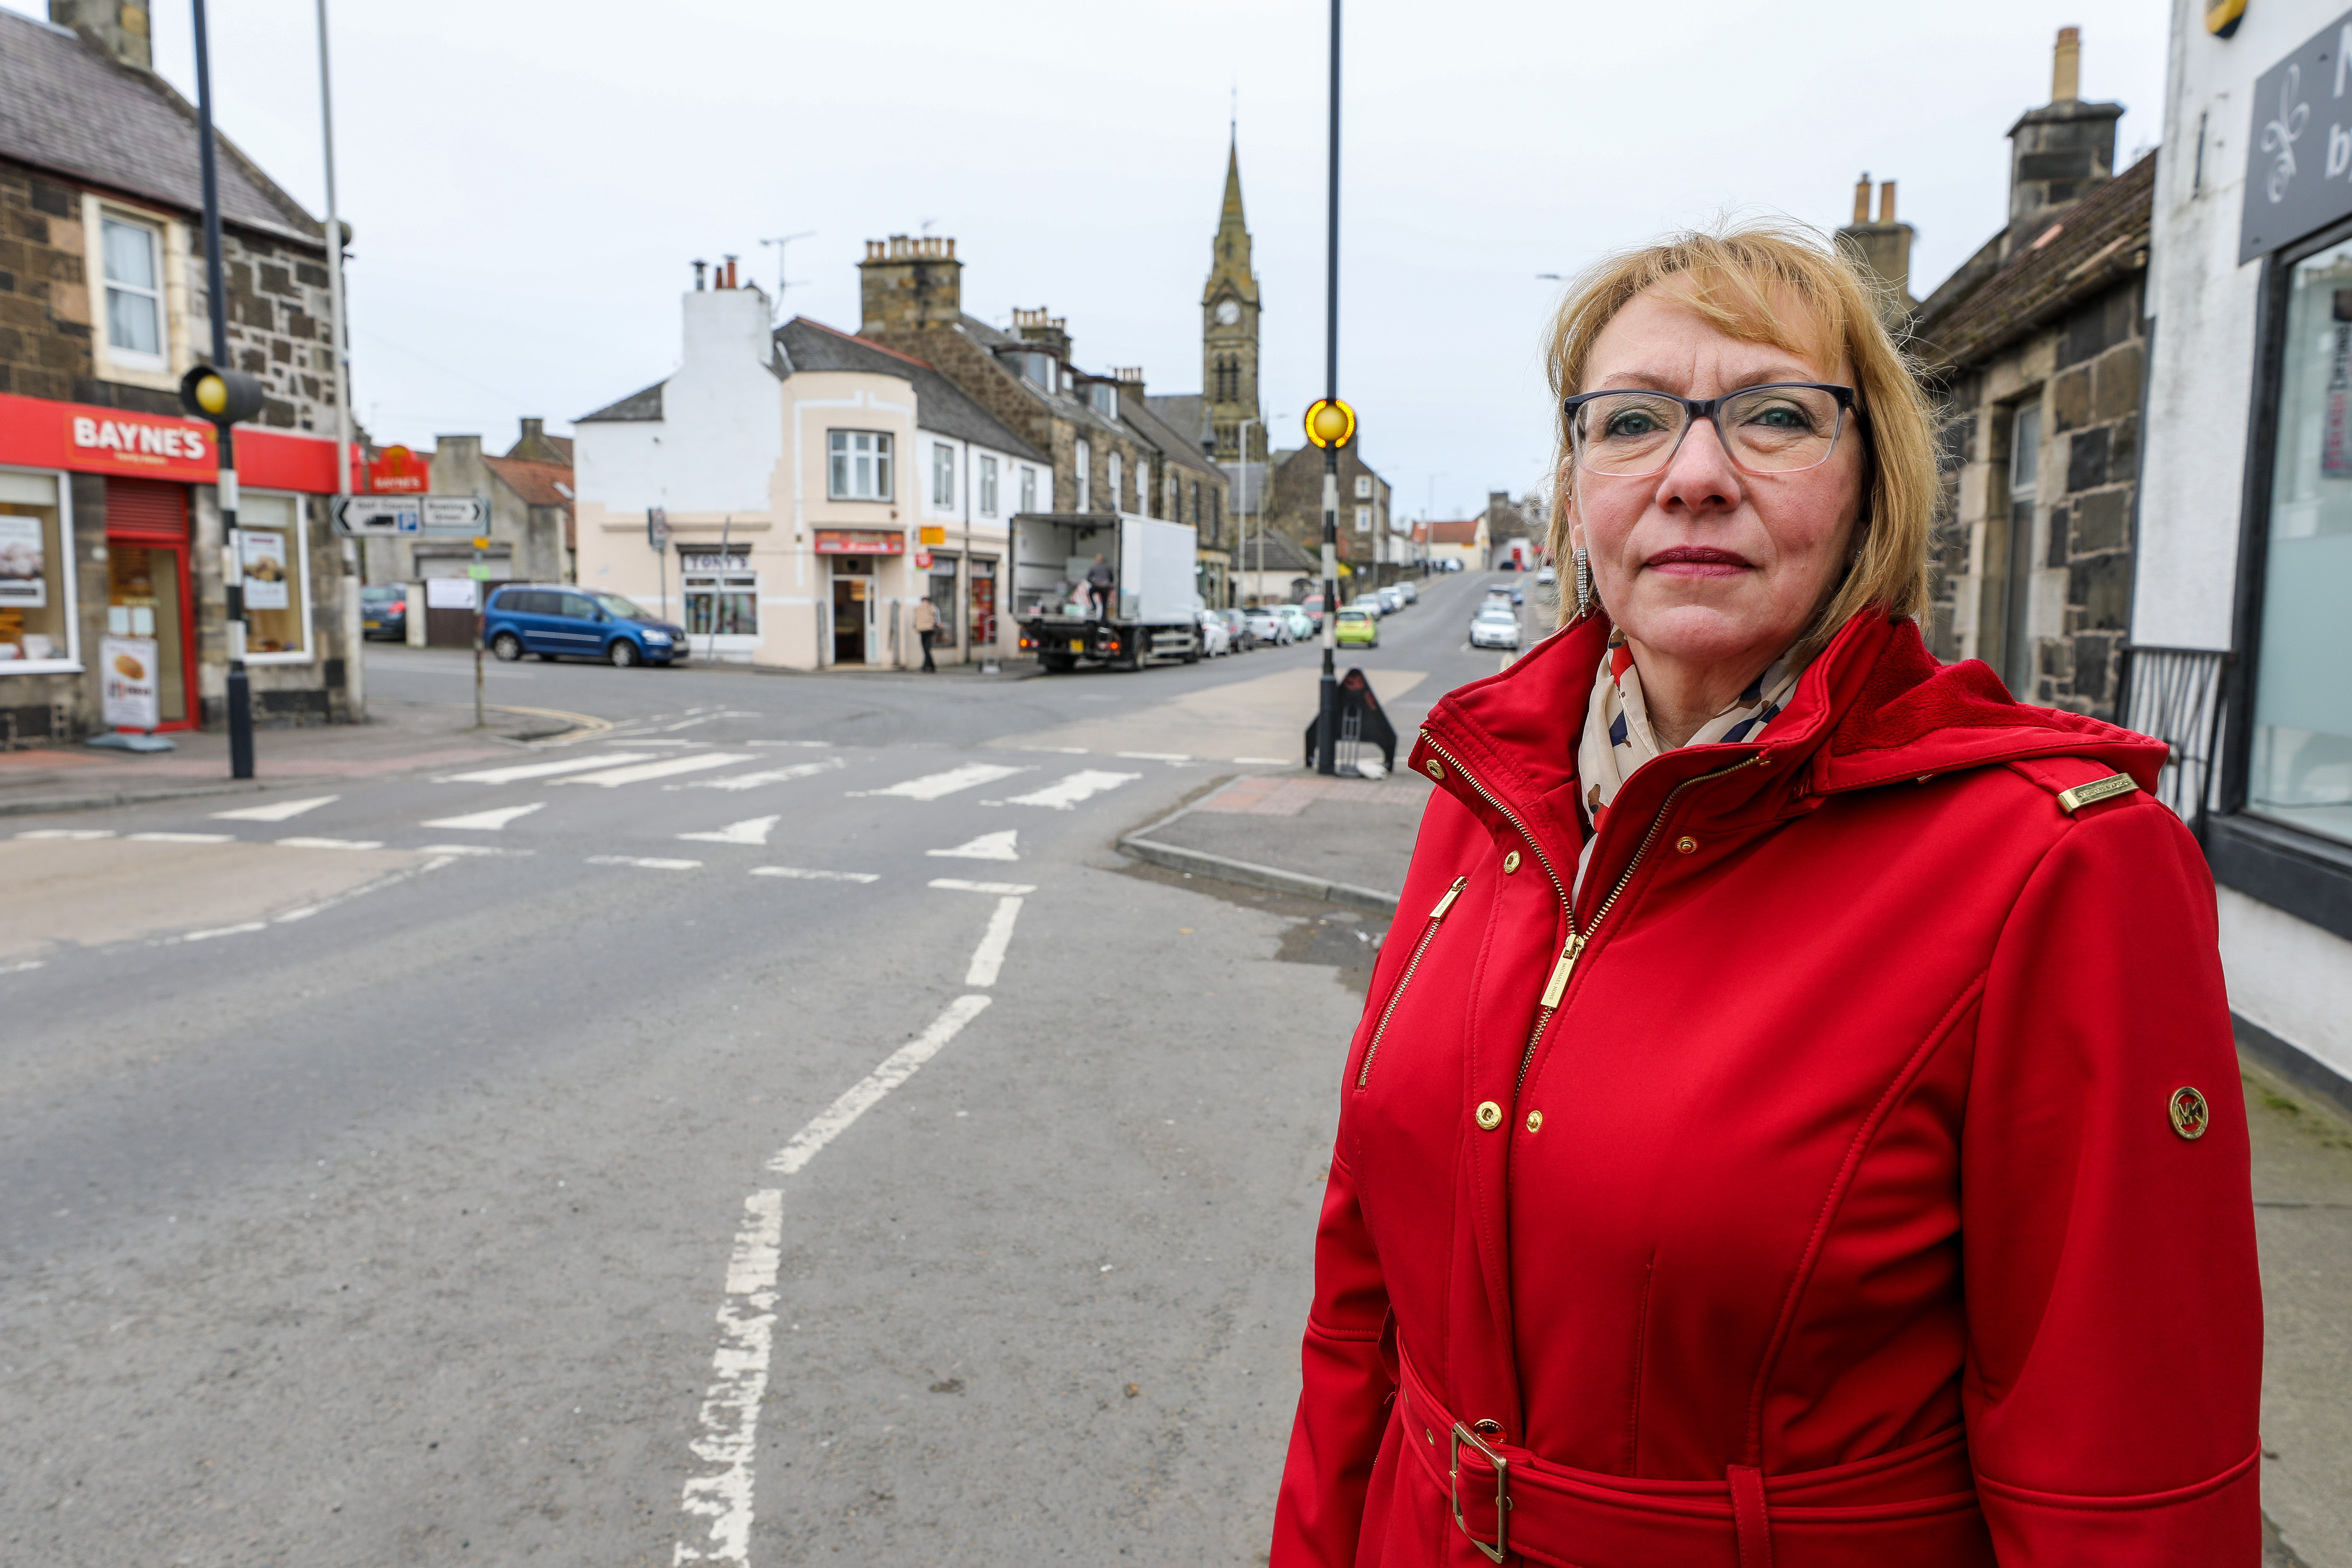 Glenrothes councillor Jan Wincott said more should have been done to inform those affected by the boundary changes.